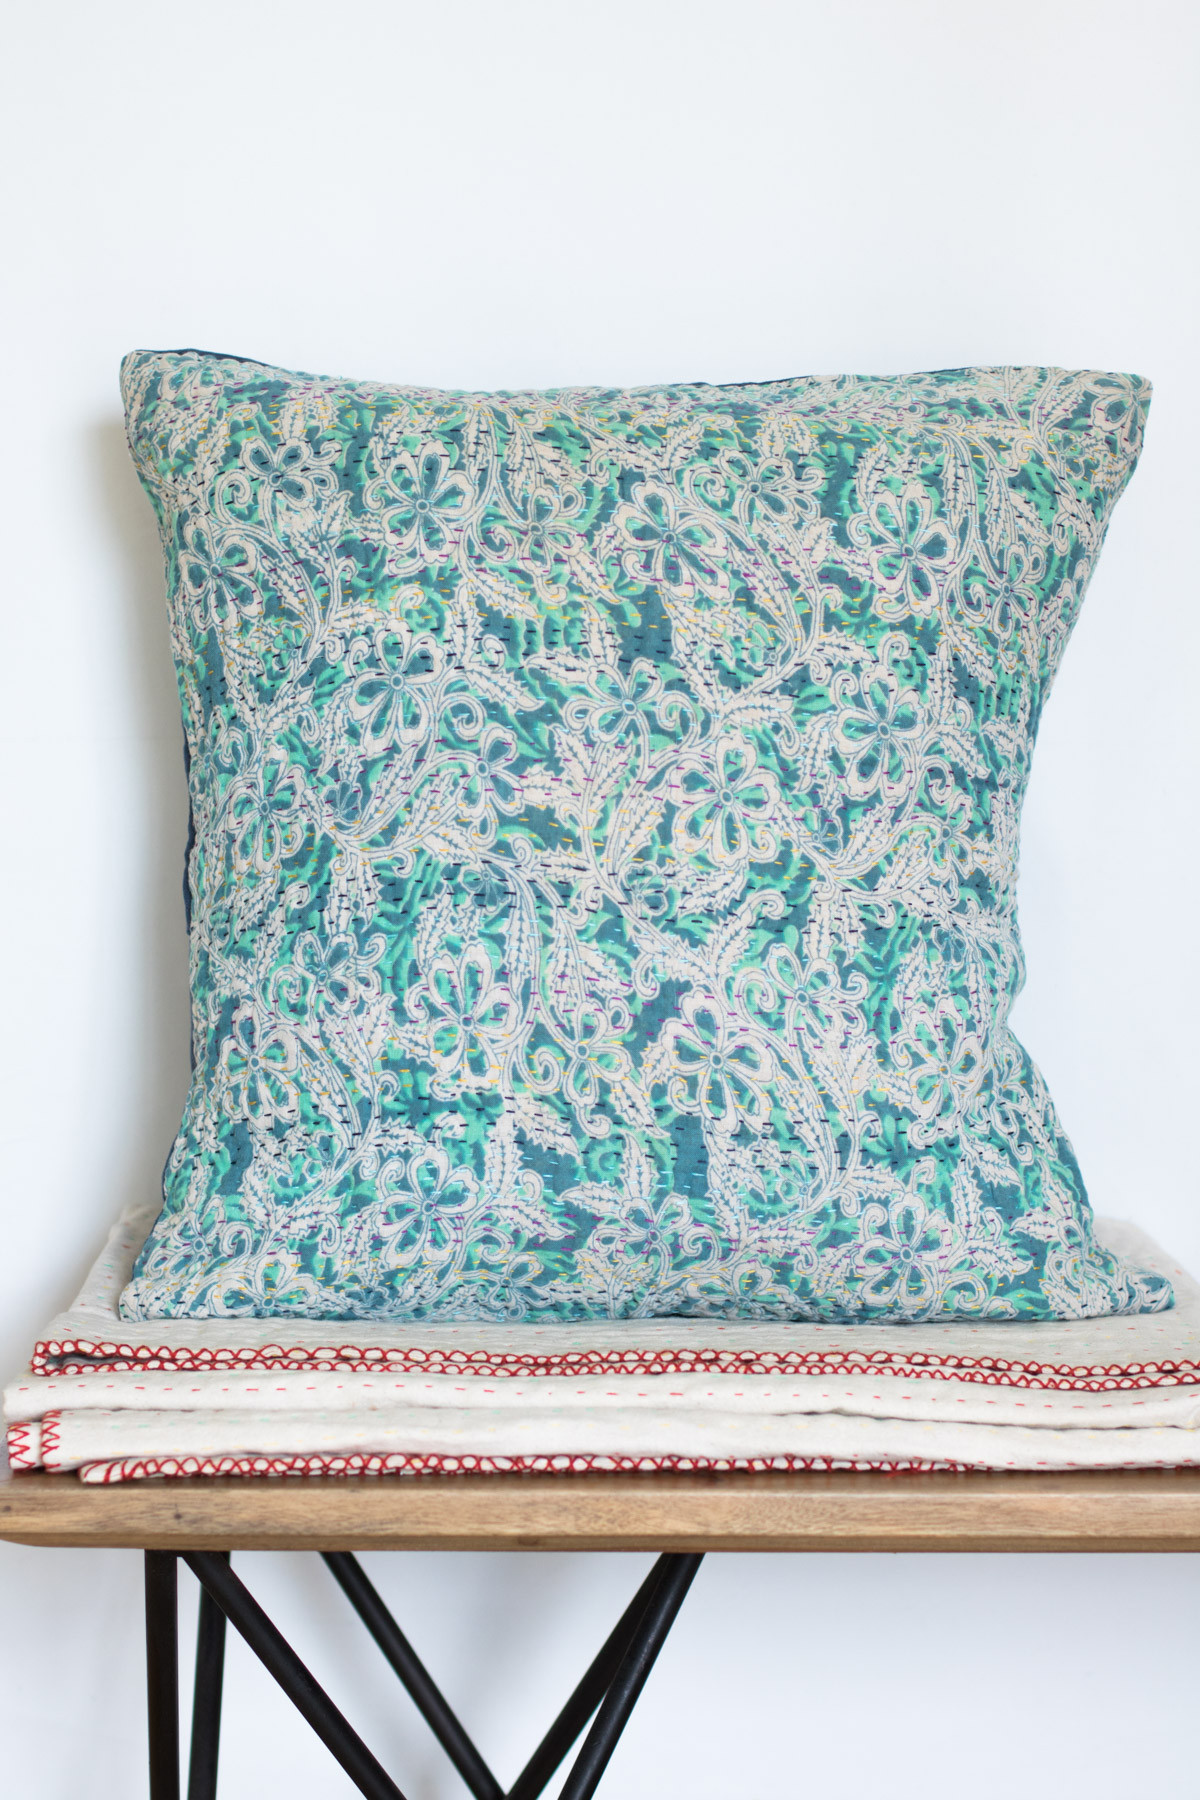 Pottery Barn Throws | Couch Cushion Covers | Decorative Pillow Covers